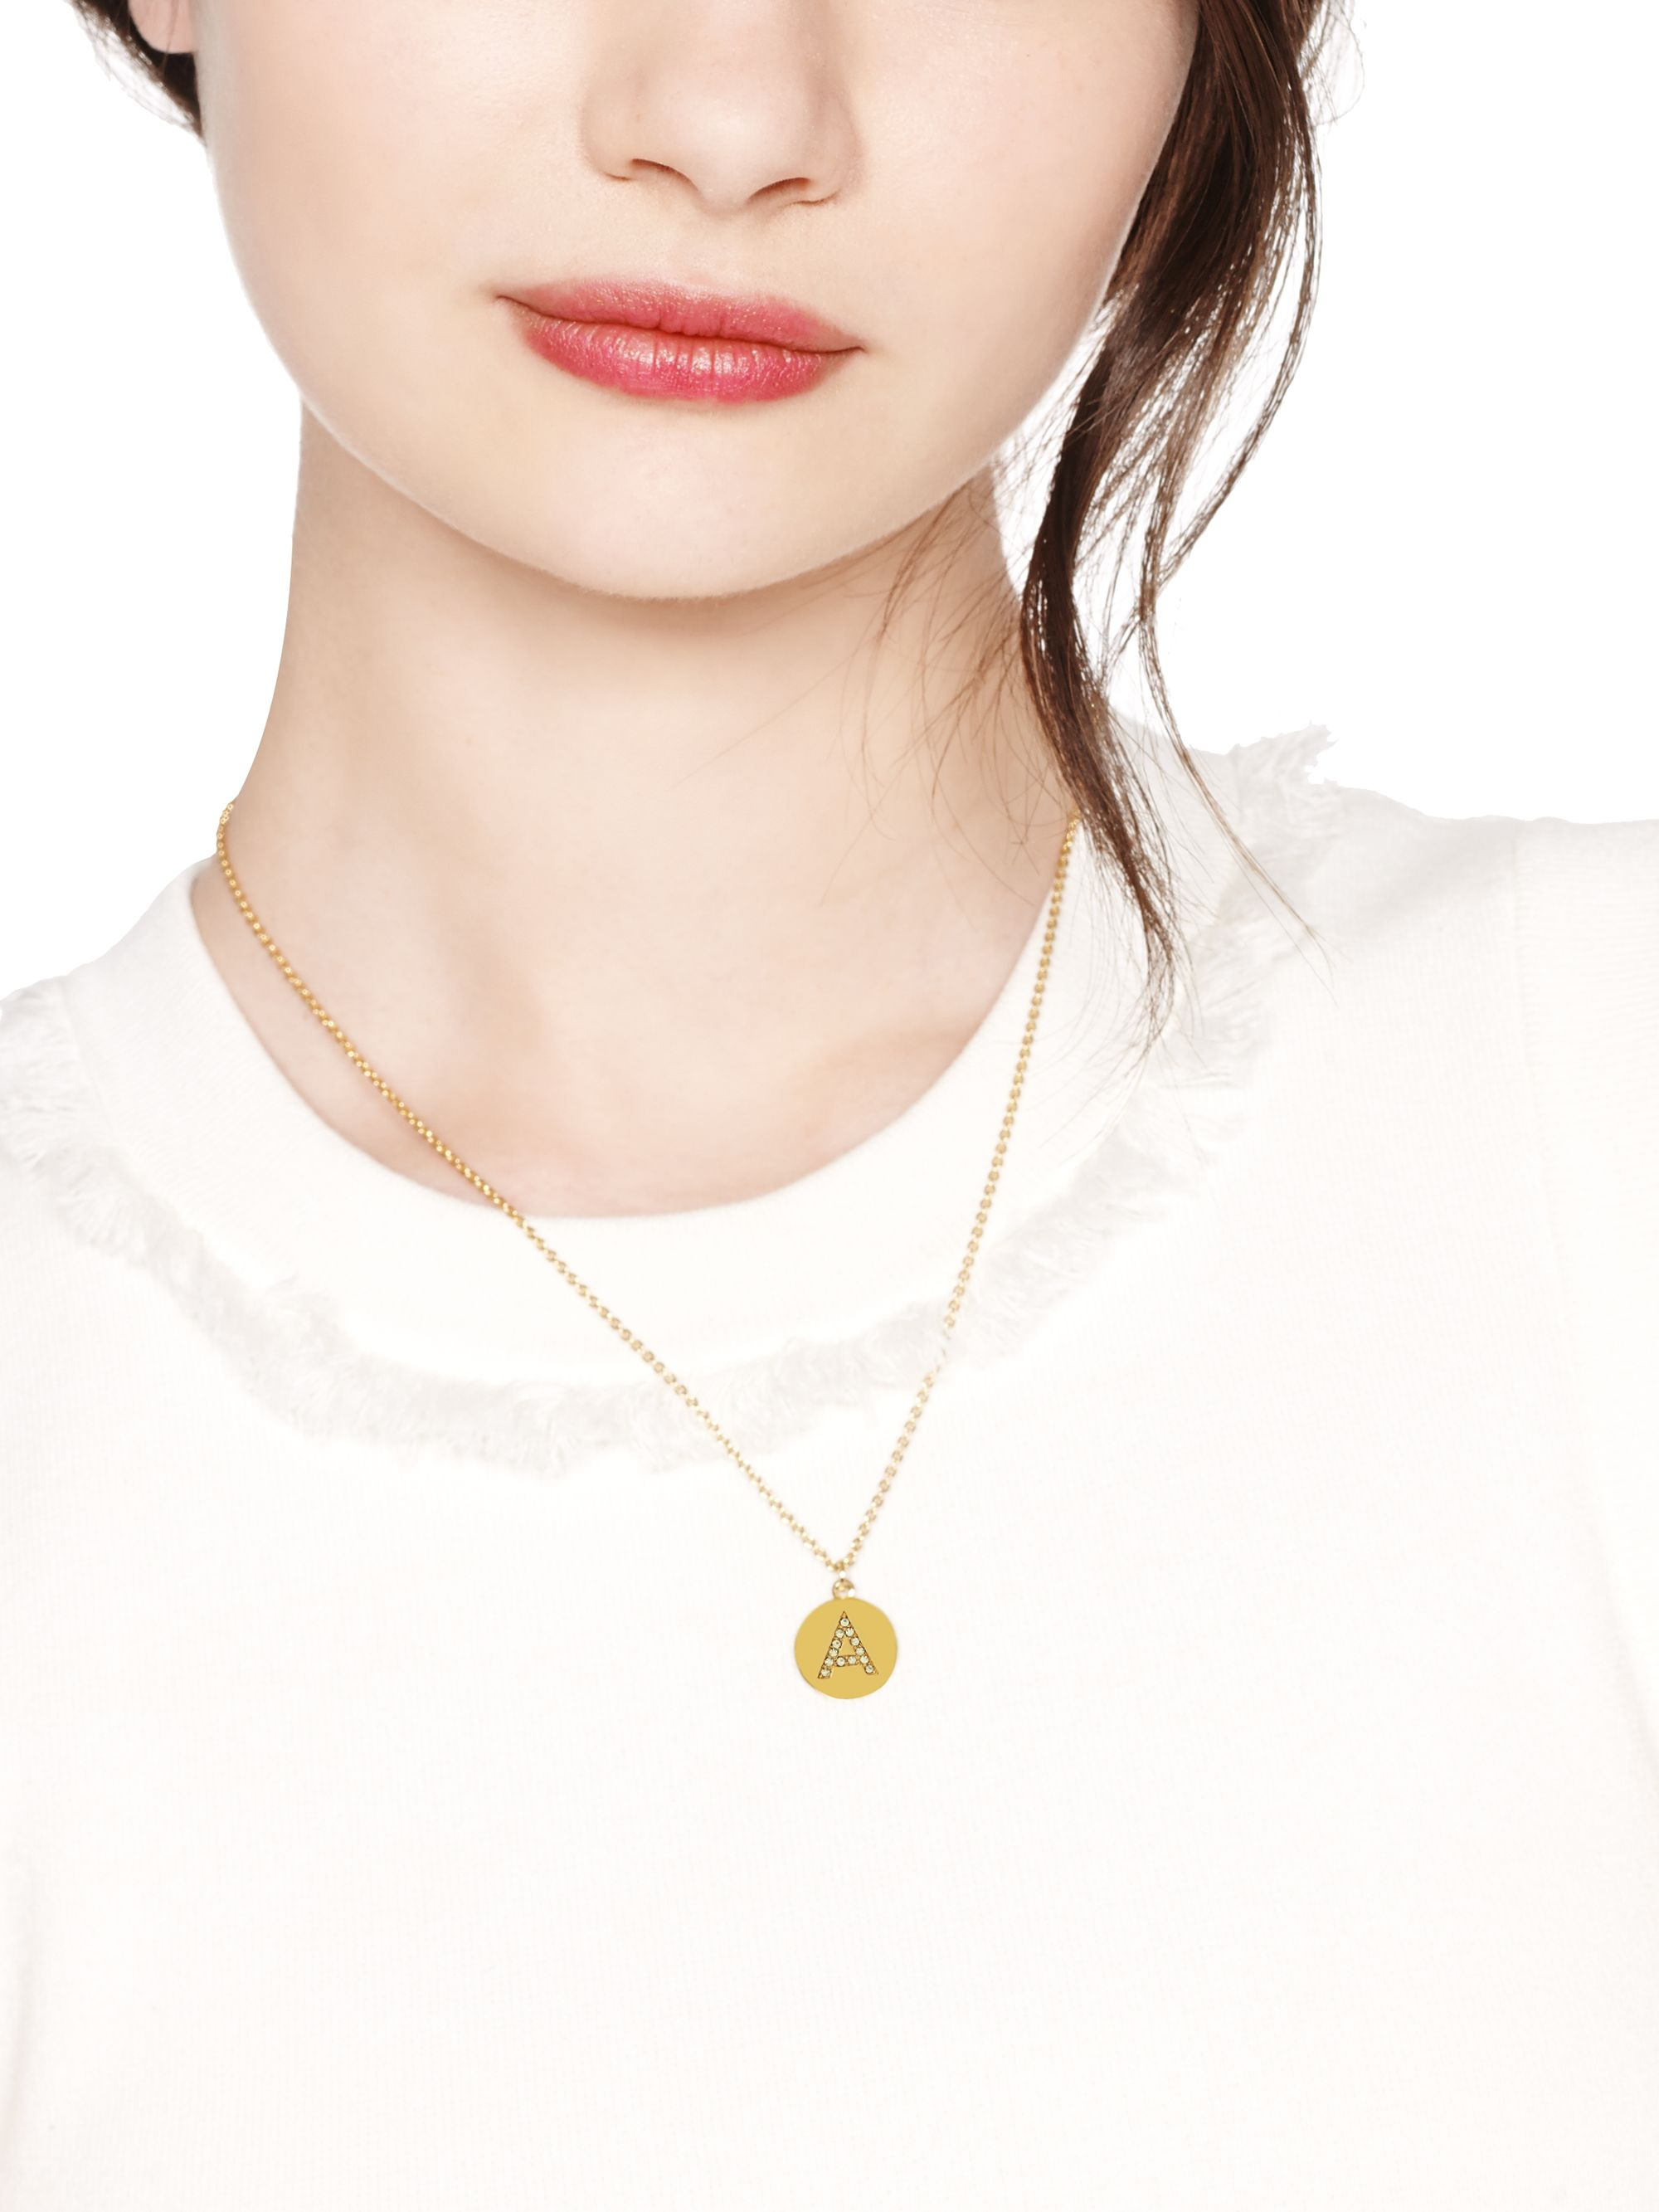 Elegant gold initial necklace pendant jewellrys website gold necklace with round initial pendant the best necklaces in 2017 aloadofball Image collections